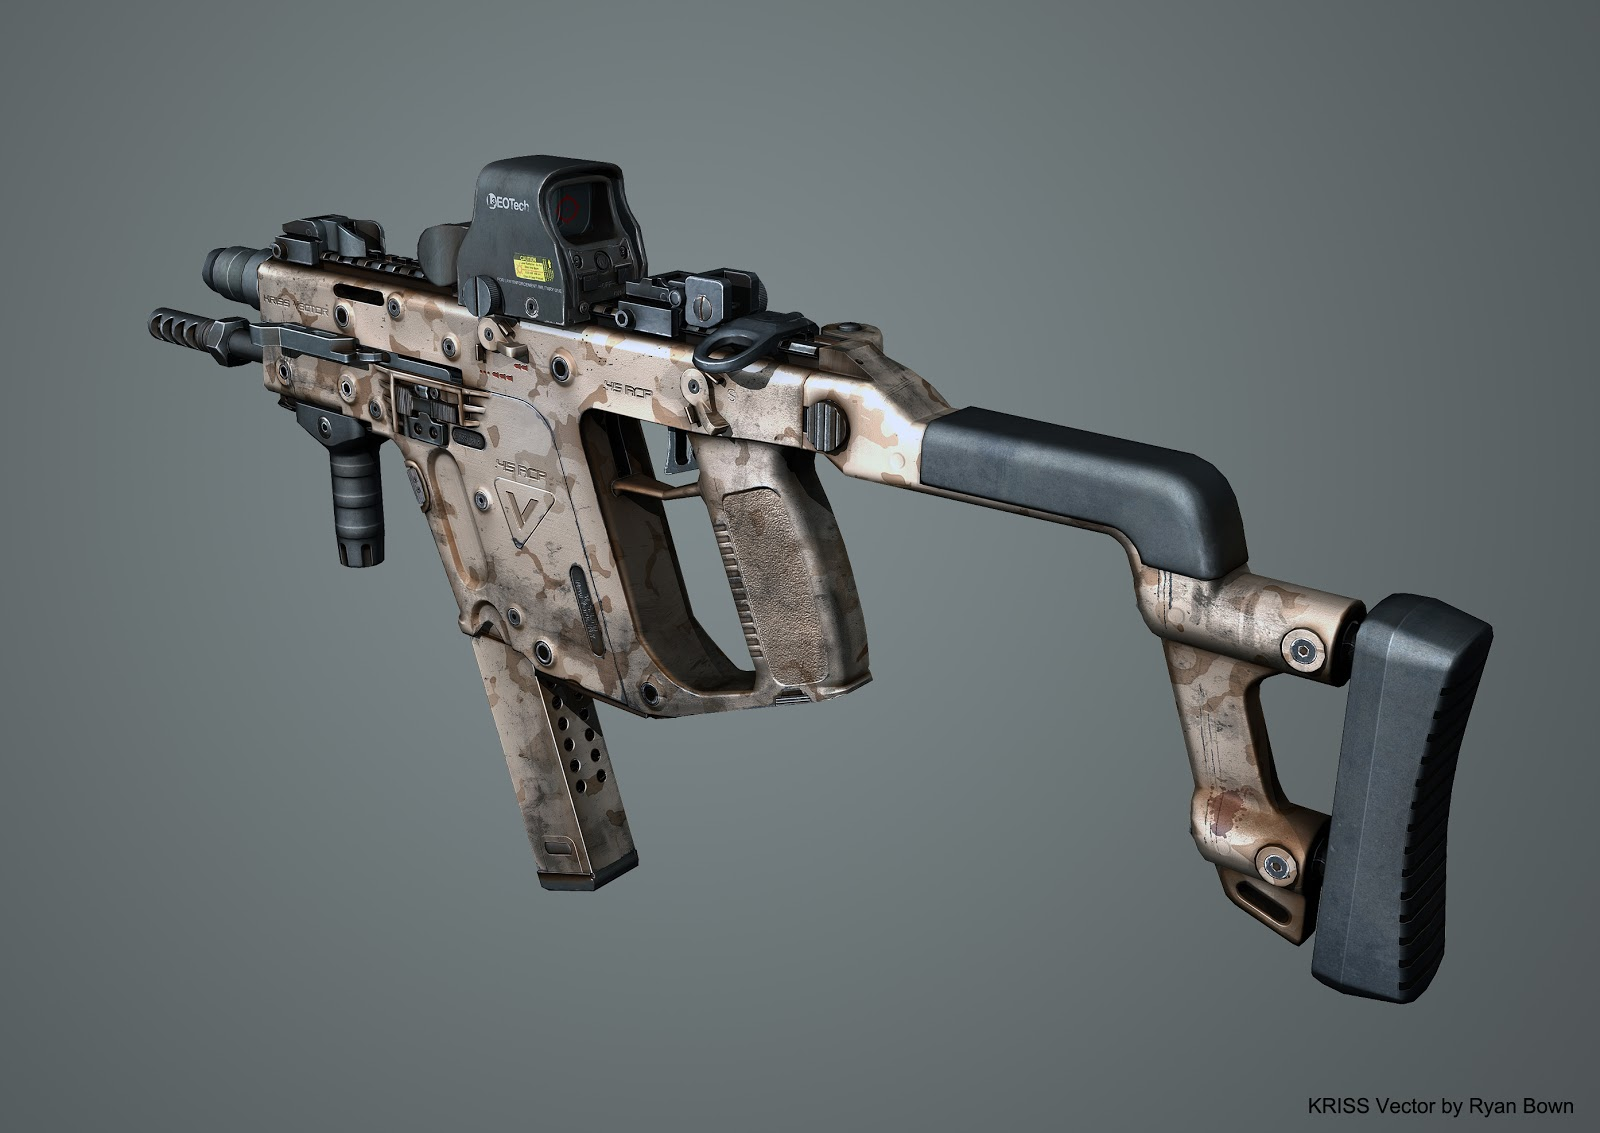 ryan bown 11 12 12 kriss vector